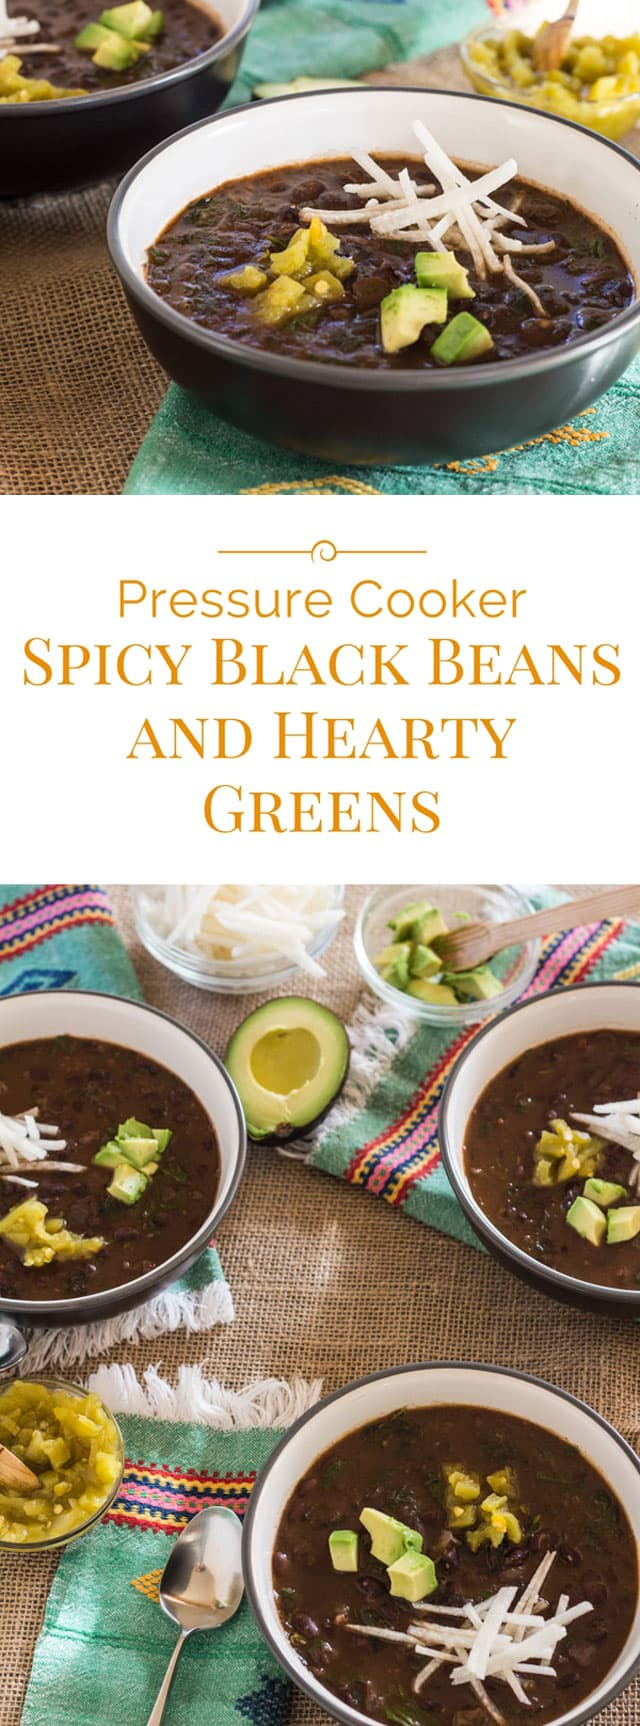 photo collage of bowls of spicy black beans with hearty greens